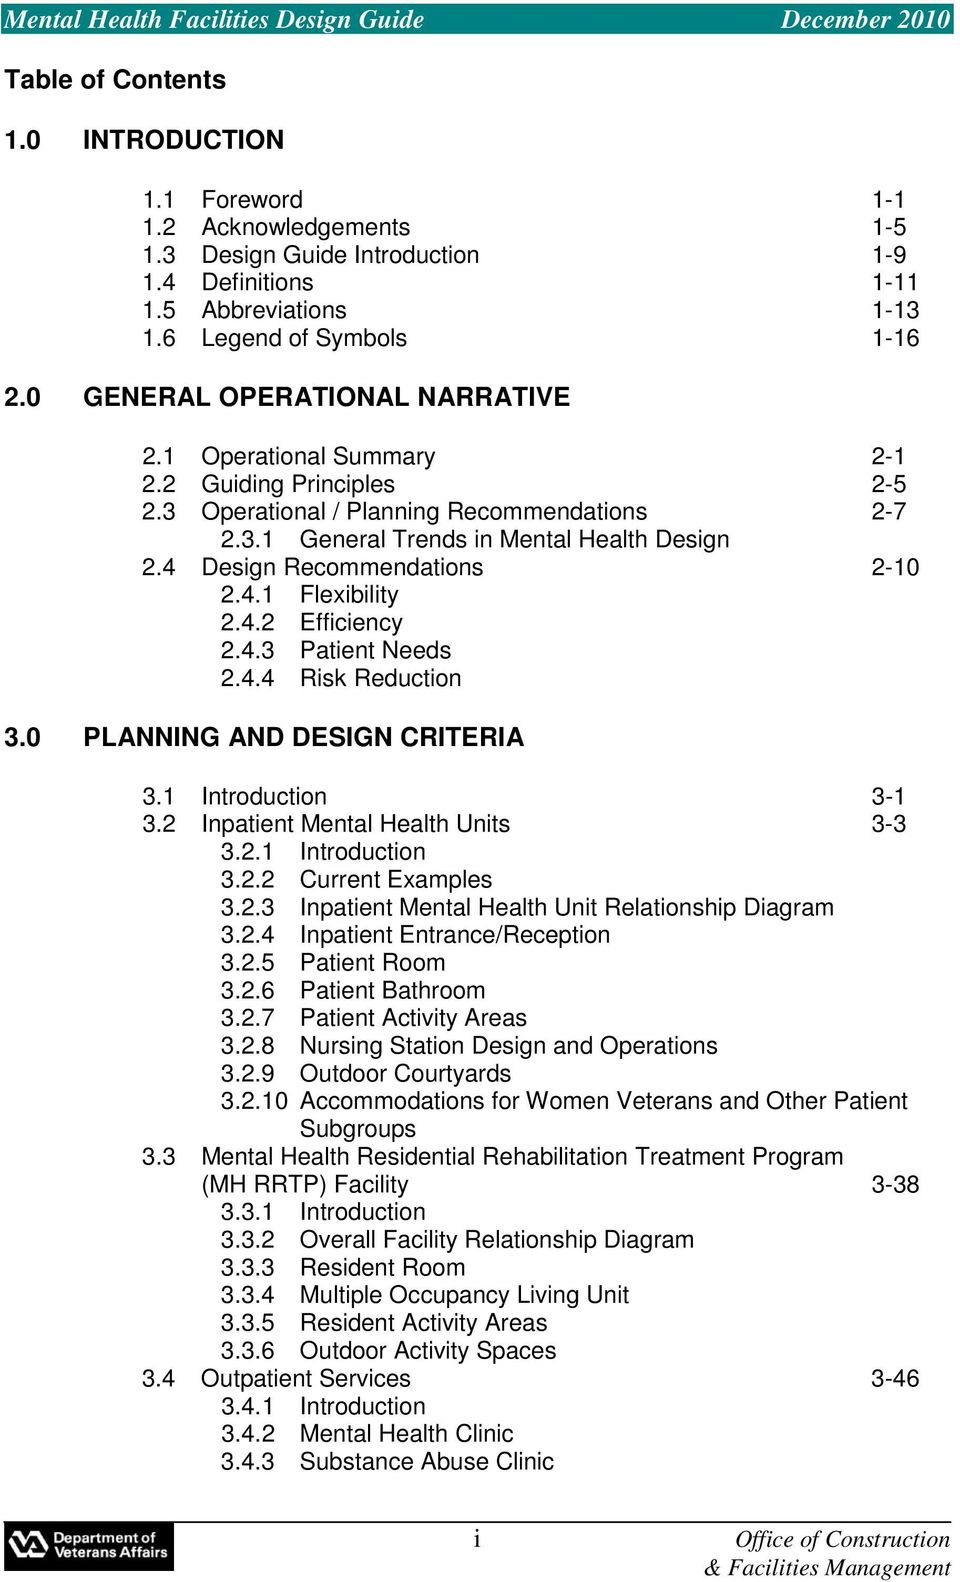 4 Design Recommendations 2-10 2.4.1 Flexibility 2.4.2 Efficiency 2.4.3 Patient Needs 2.4.4 Risk Reduction 3.0 PLANNING AND DESIGN CRITERIA 3.1 Introduction 3-1 3.2 Inpatient Mental Health Units 3-3 3.